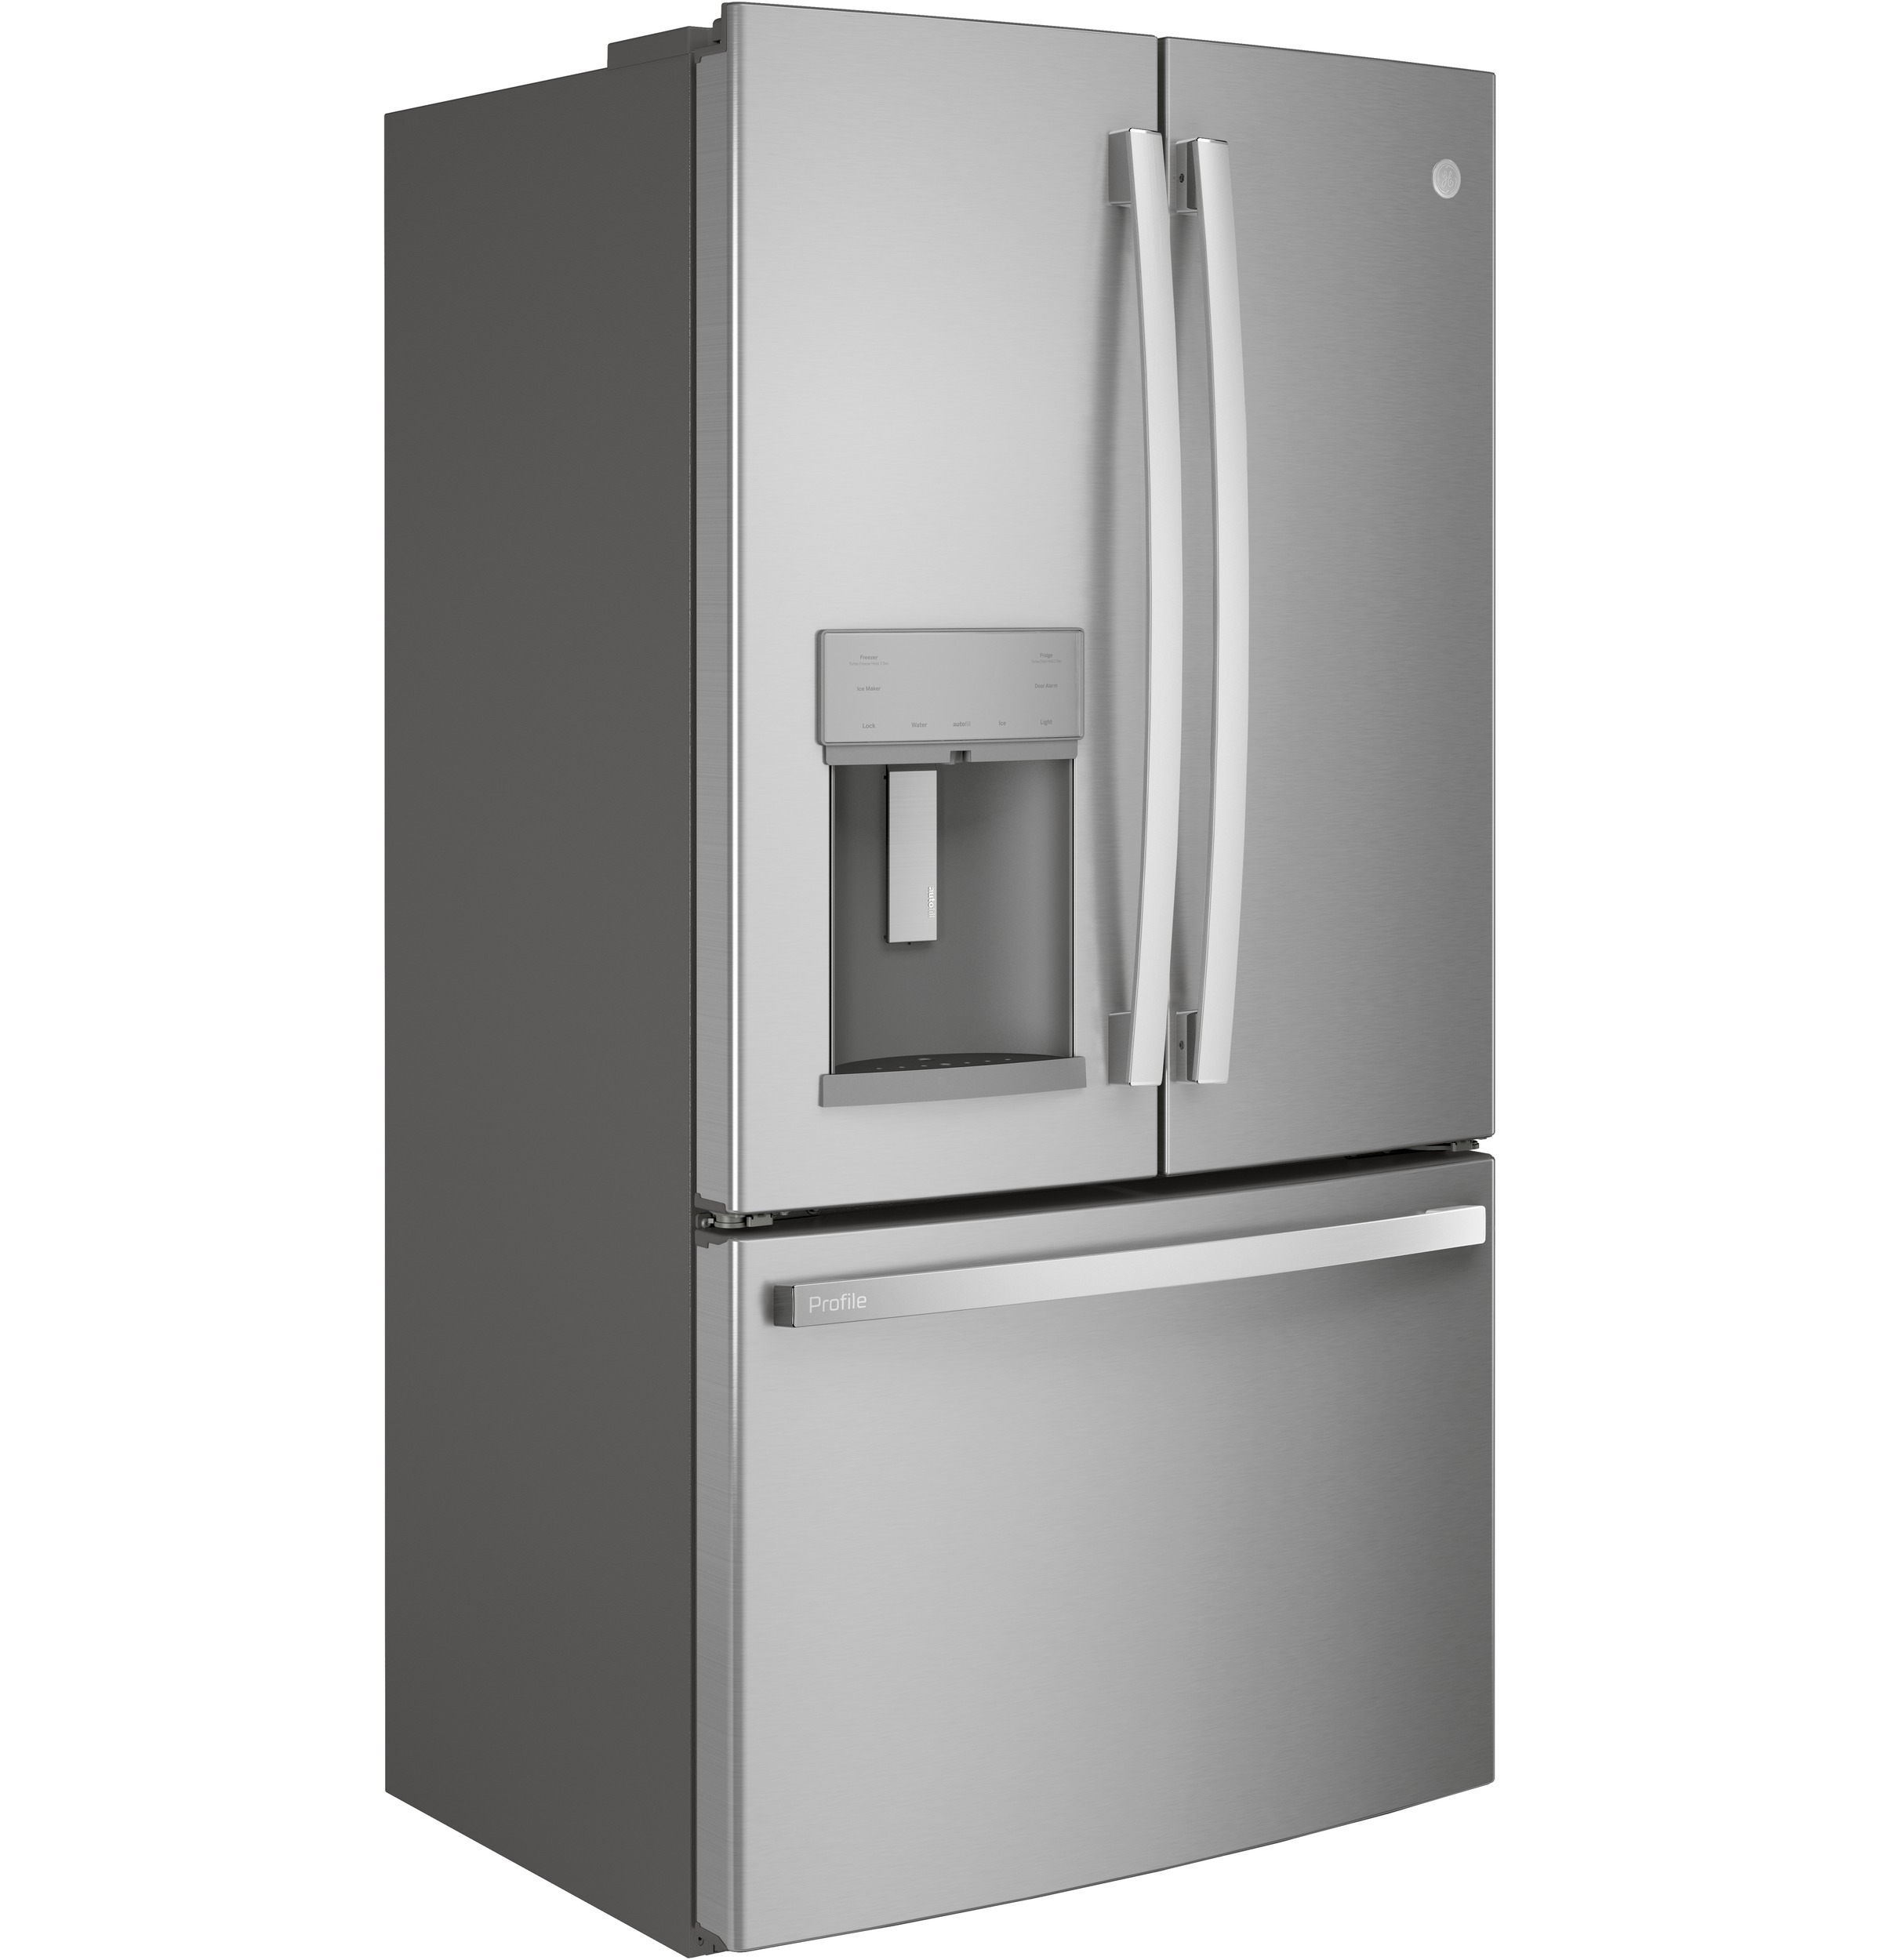 Model: PFE28KYNFS | GE Profile GE Profile™ Series ENERGY STAR® 27.7 Cu. Ft. French-Door Refrigerator with Hands-Free AutoFill